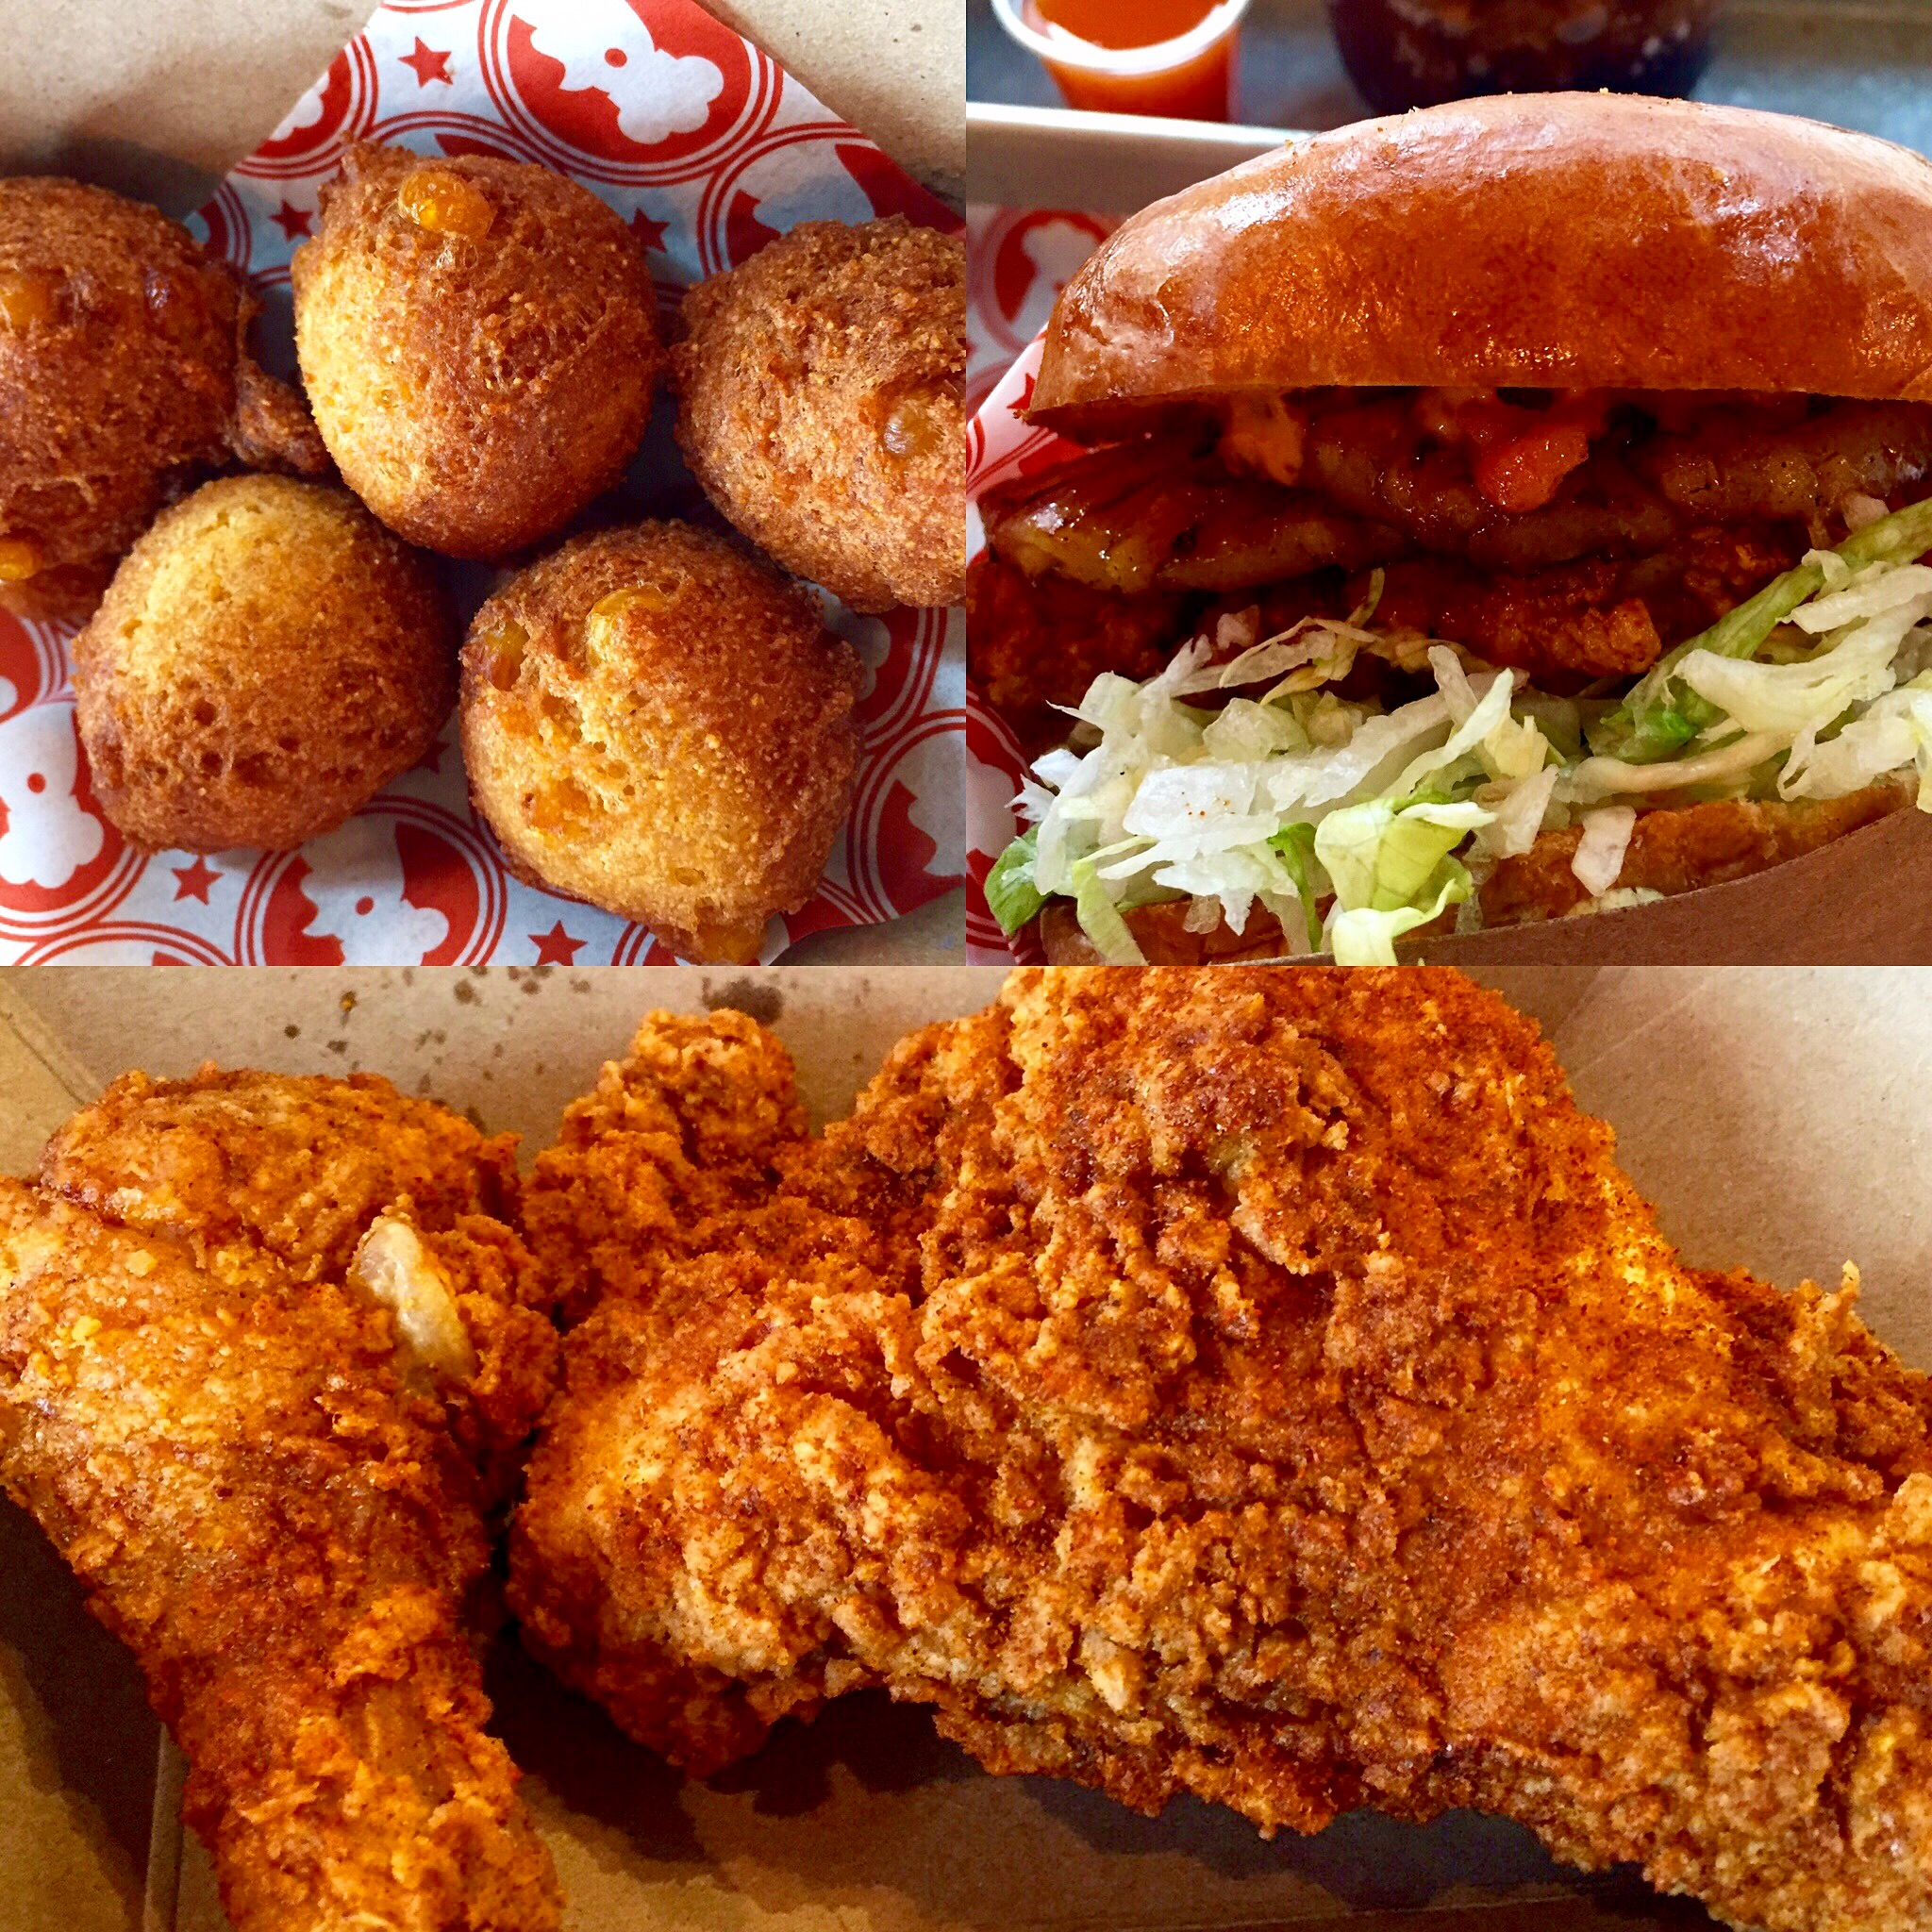 Hush puppies, chicken sandwich, breast and legs.